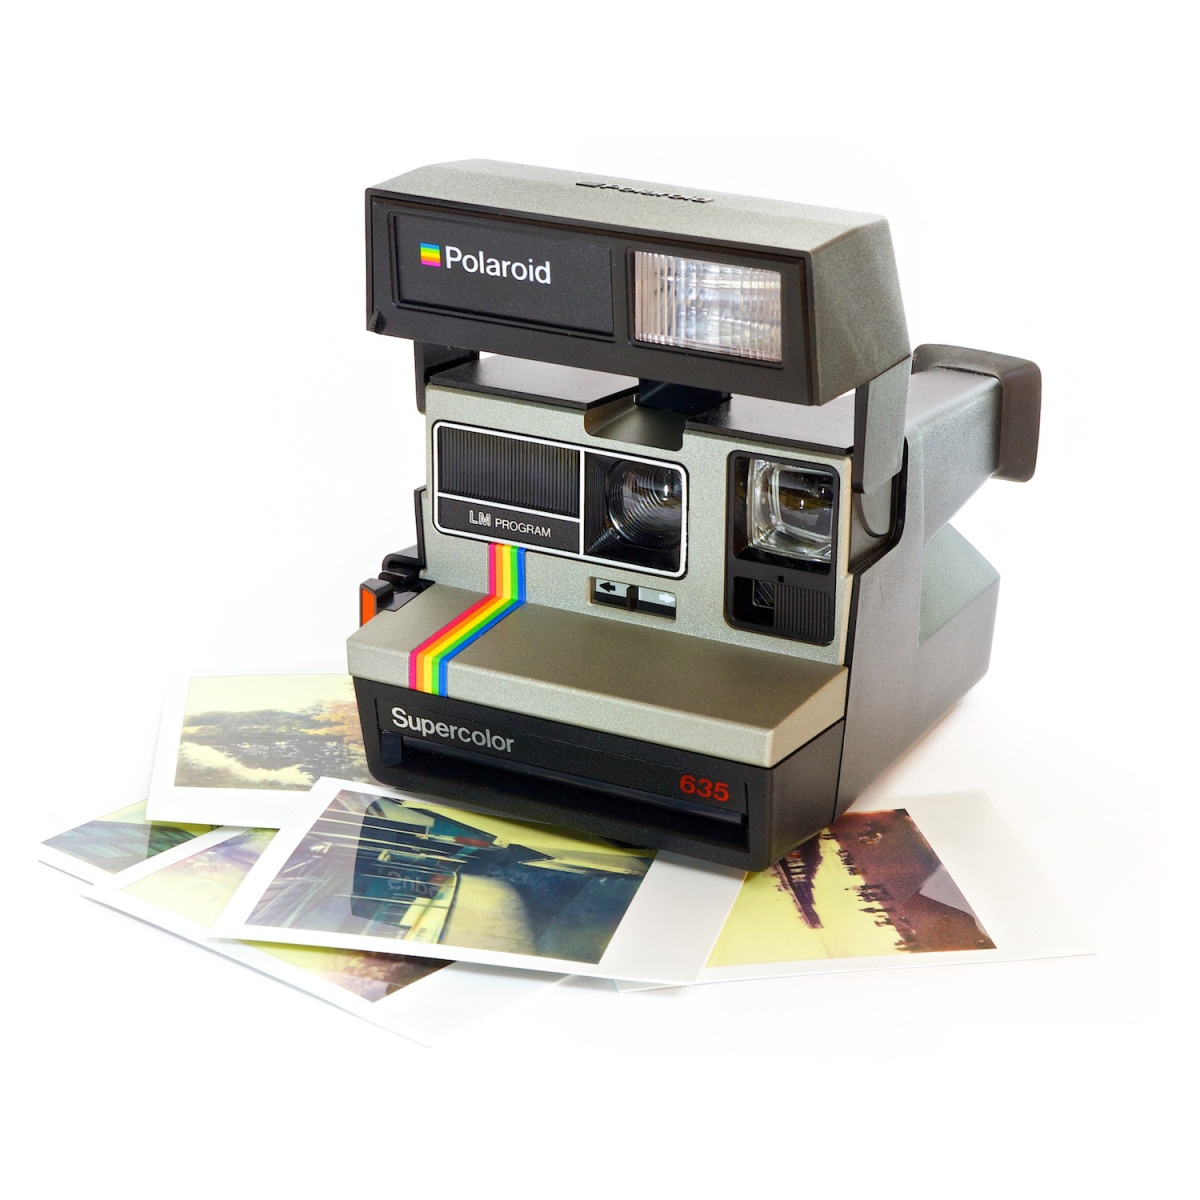 a history of the polaroid corporation founded by edwin land and george wheelwright Polaroid files chapter 11 properties of polarized light in 1937 land and george wheelwright edwin land, polaroid no longer developed innovative and.